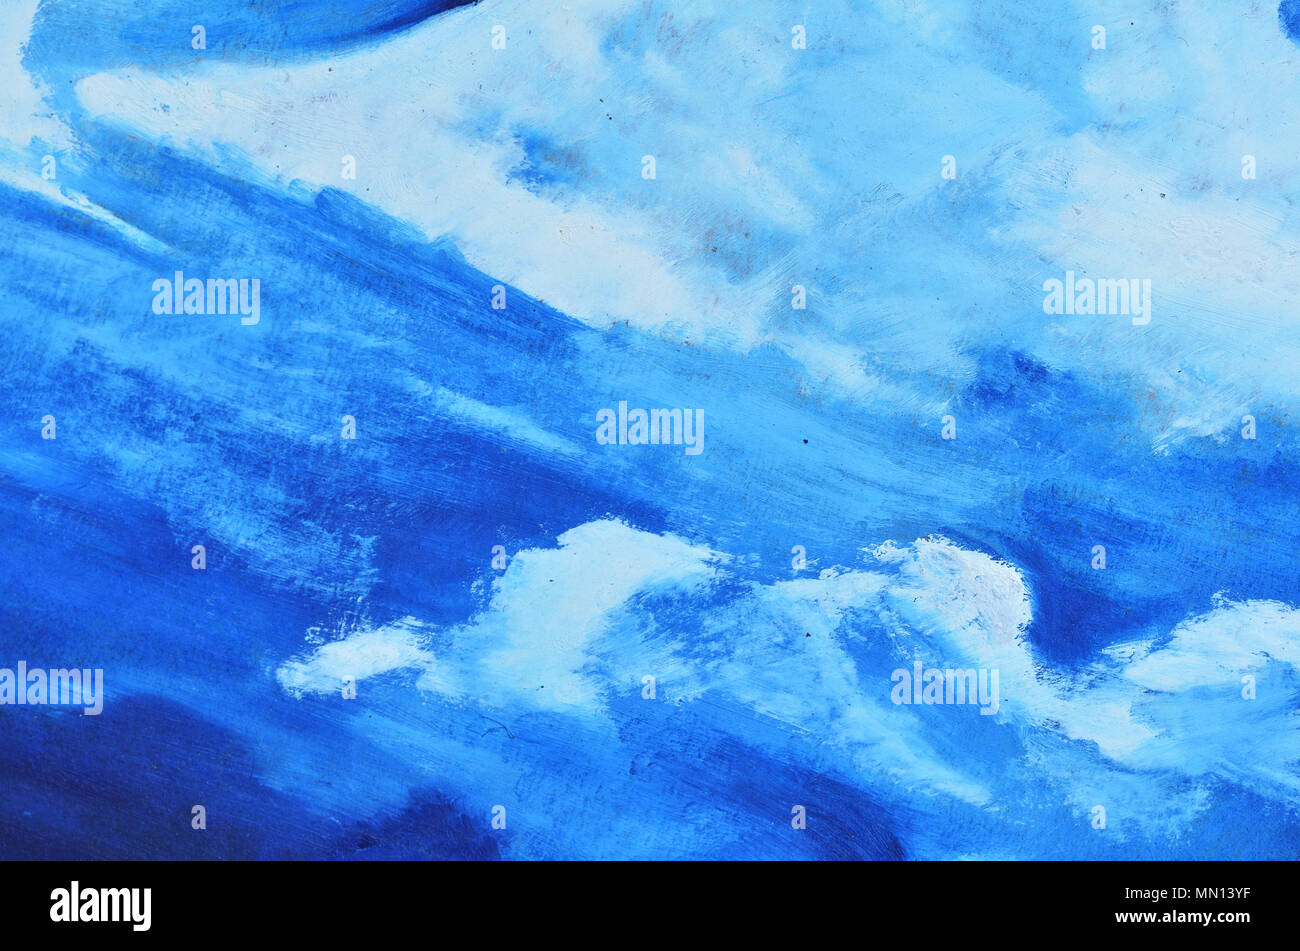 a blue sky with white clouds is painted with watercolor paint on